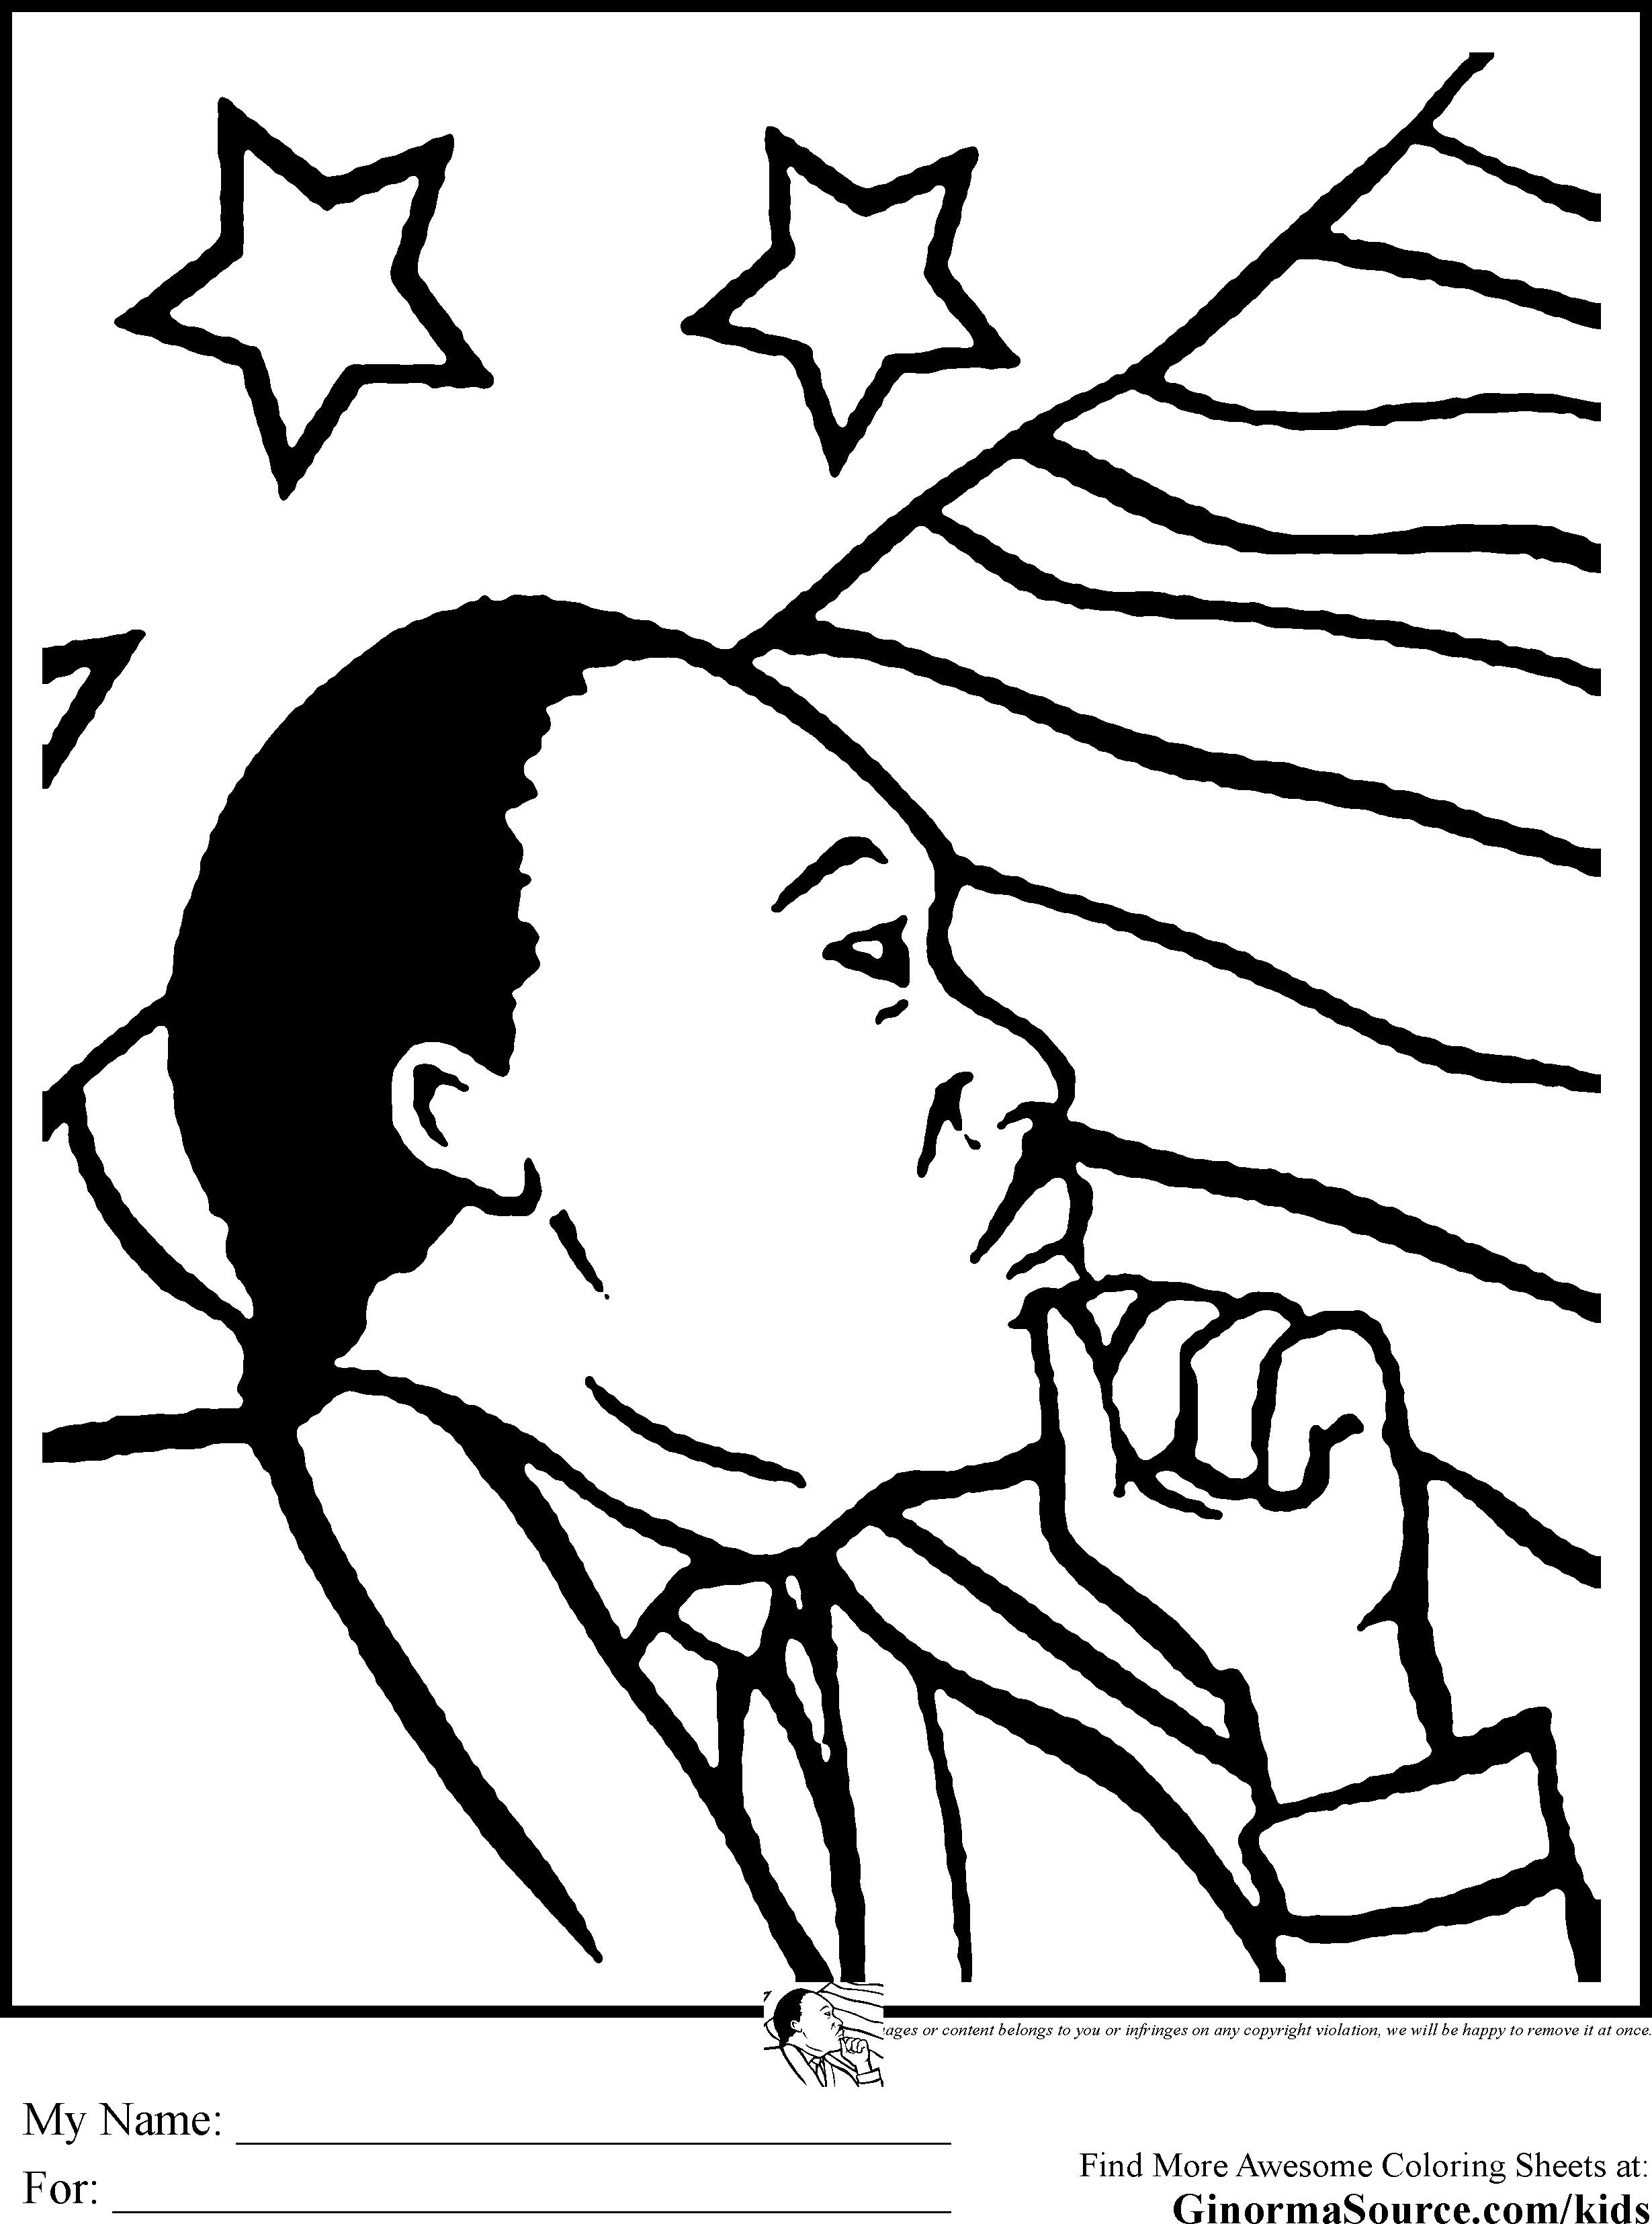 Free Mlk Coloring Pages At Getcolorings